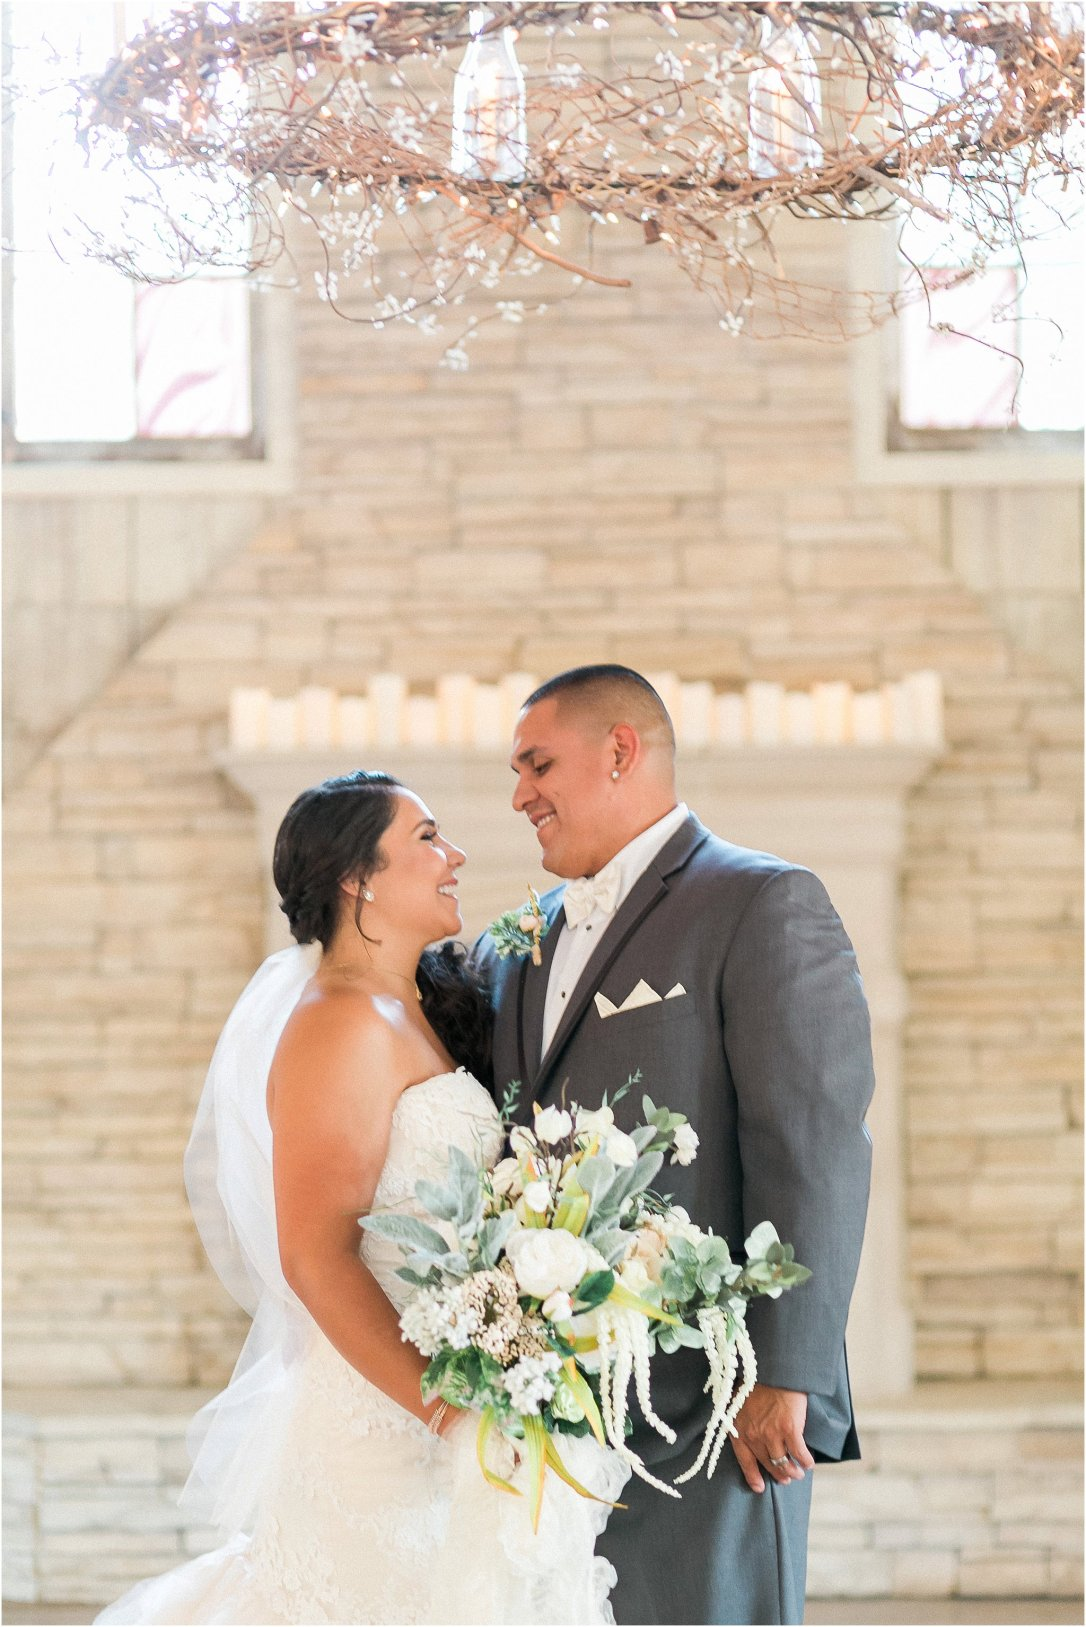 Rubidia C Photography Oakland Bay Area Walnut Creek Bay Area oakland SF Wedding Photographer CA_0079.jpg